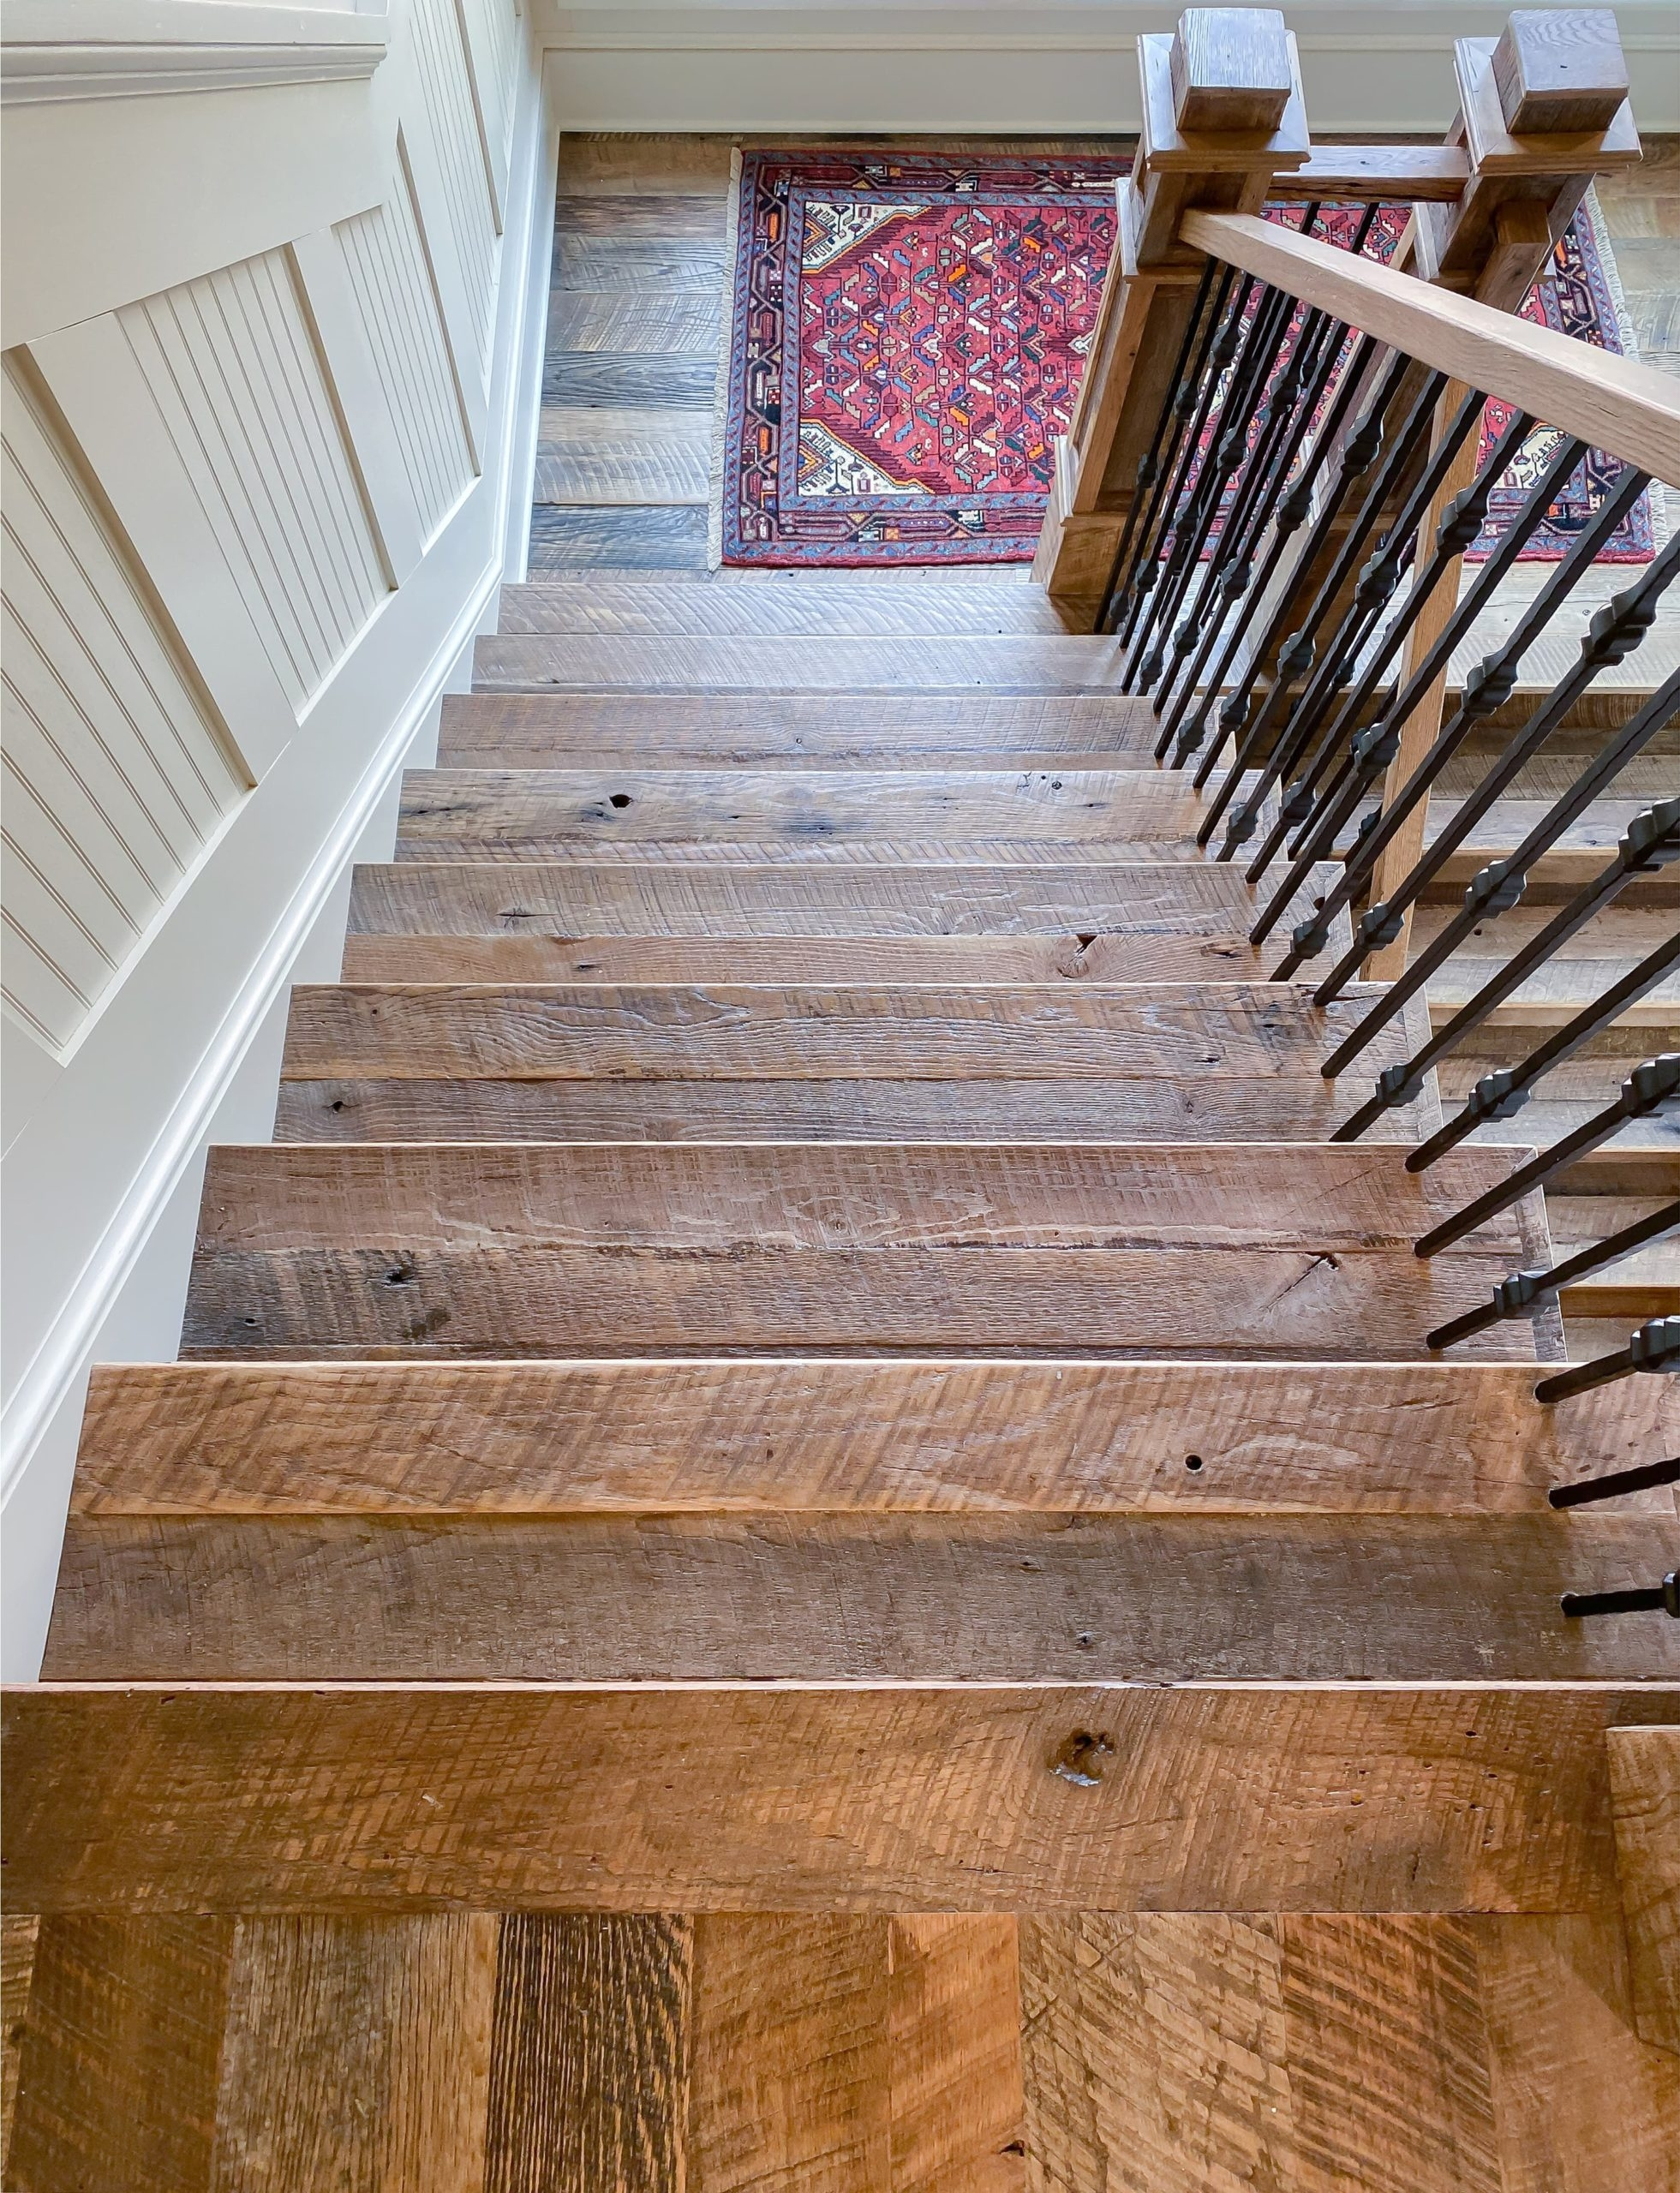 Antique Reclaimed Original Face Oak Stair Treads Risers | Reclaimed Oak Staircase For Sale | Spindles | Reclaimed Wood Stair Railing | Spiral Staircase | White Oak | Architectural Salvage